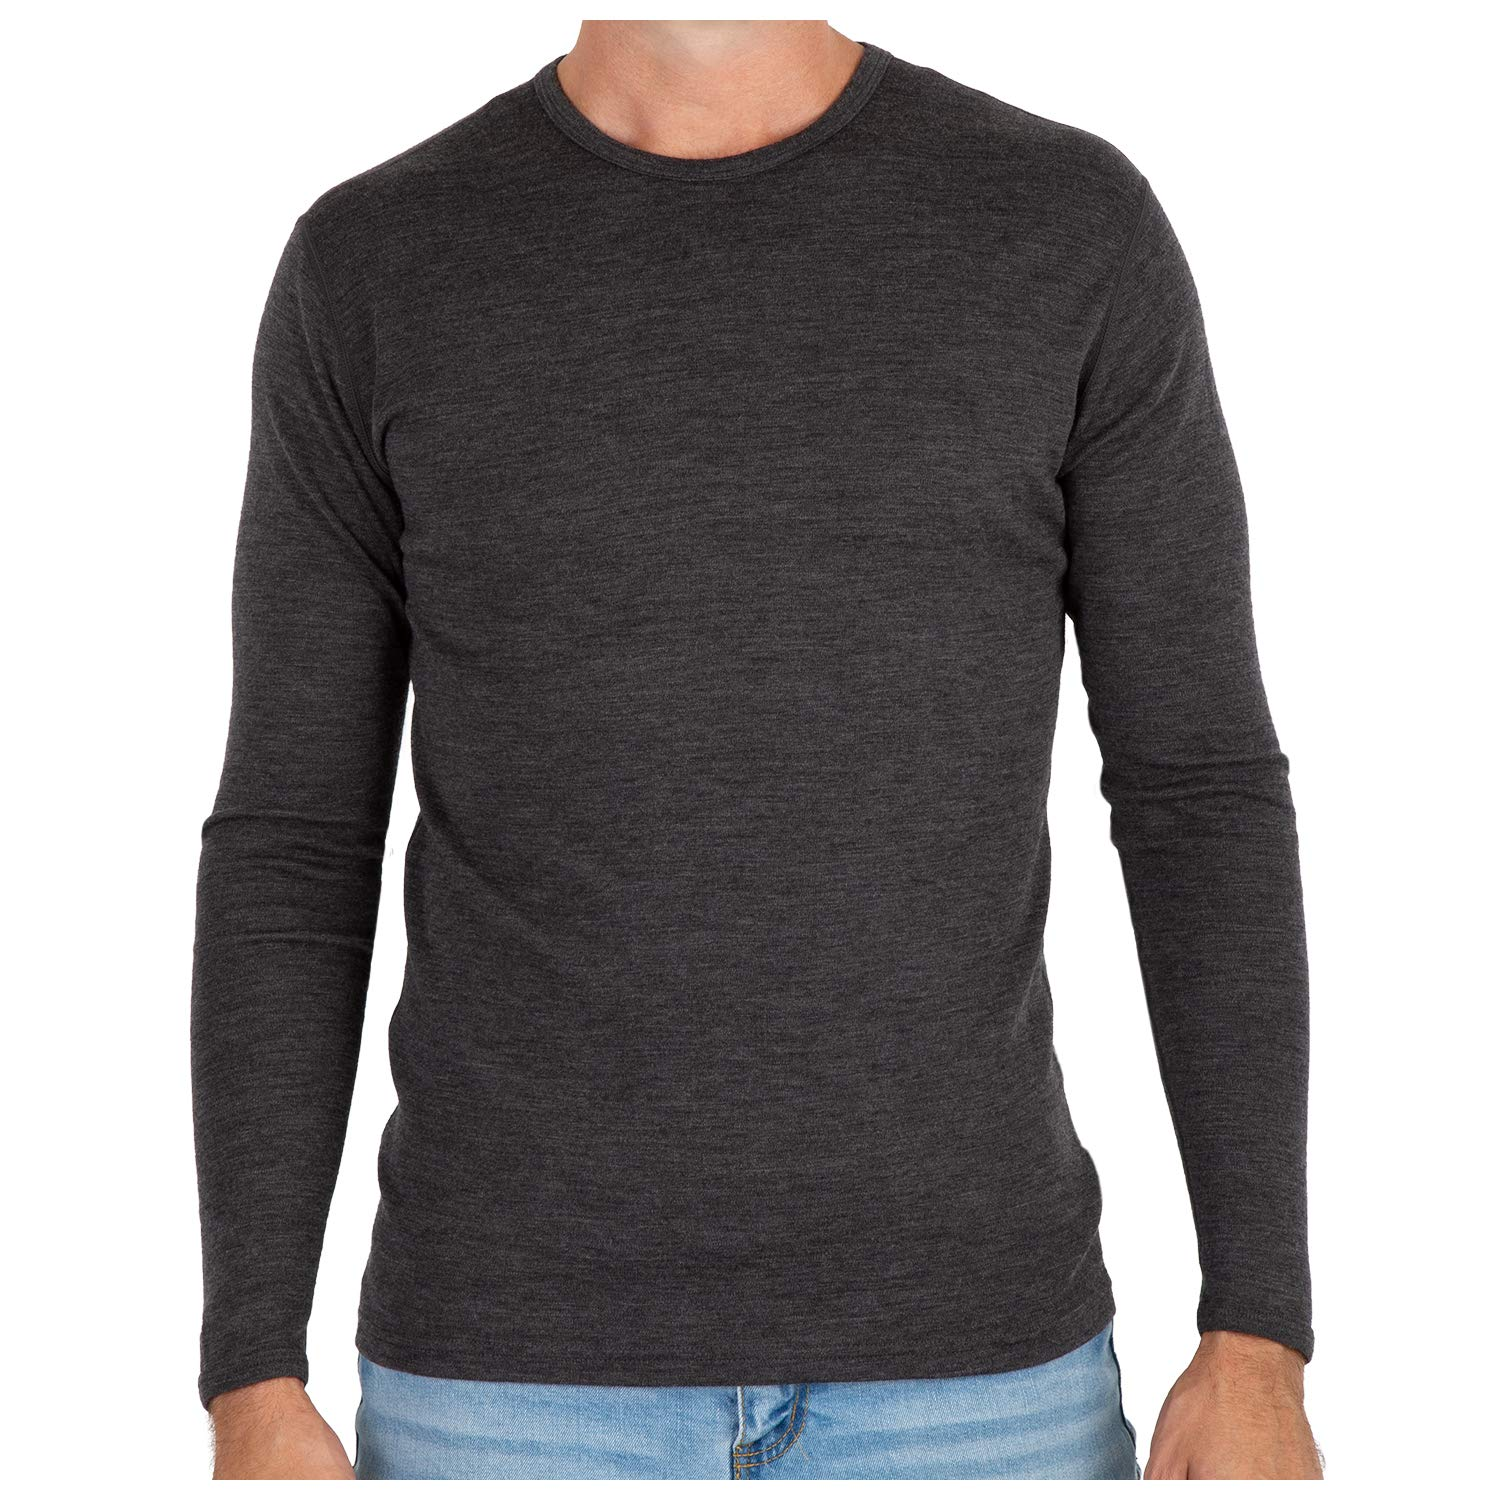 MERIWOOL Men's Merino Wool Midweight Baselayer Crew - Charcoal Gray/S